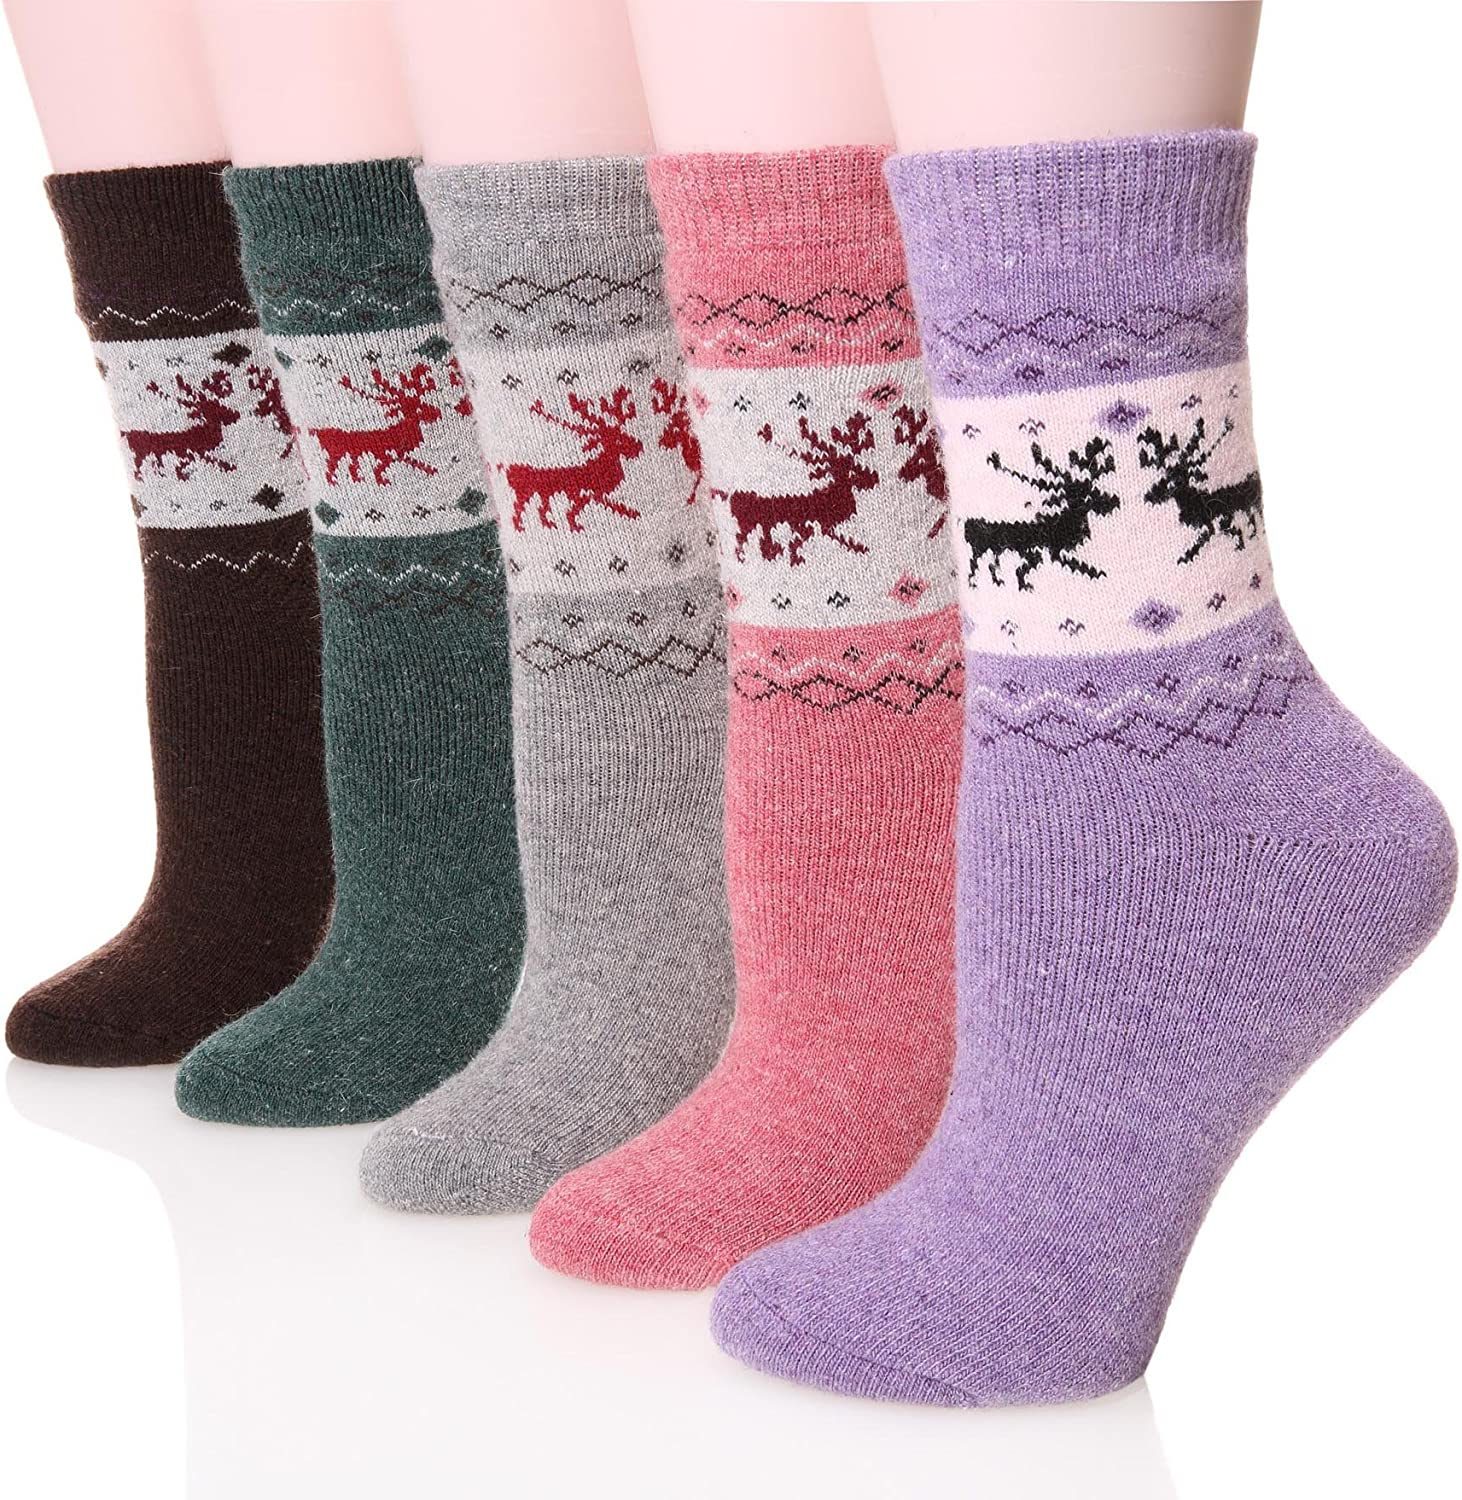 Womens Wool Socks Thick Heavy Thermal Fuzzy Winter Warm Deer Crew Socks For Cold Weather 5 Pack